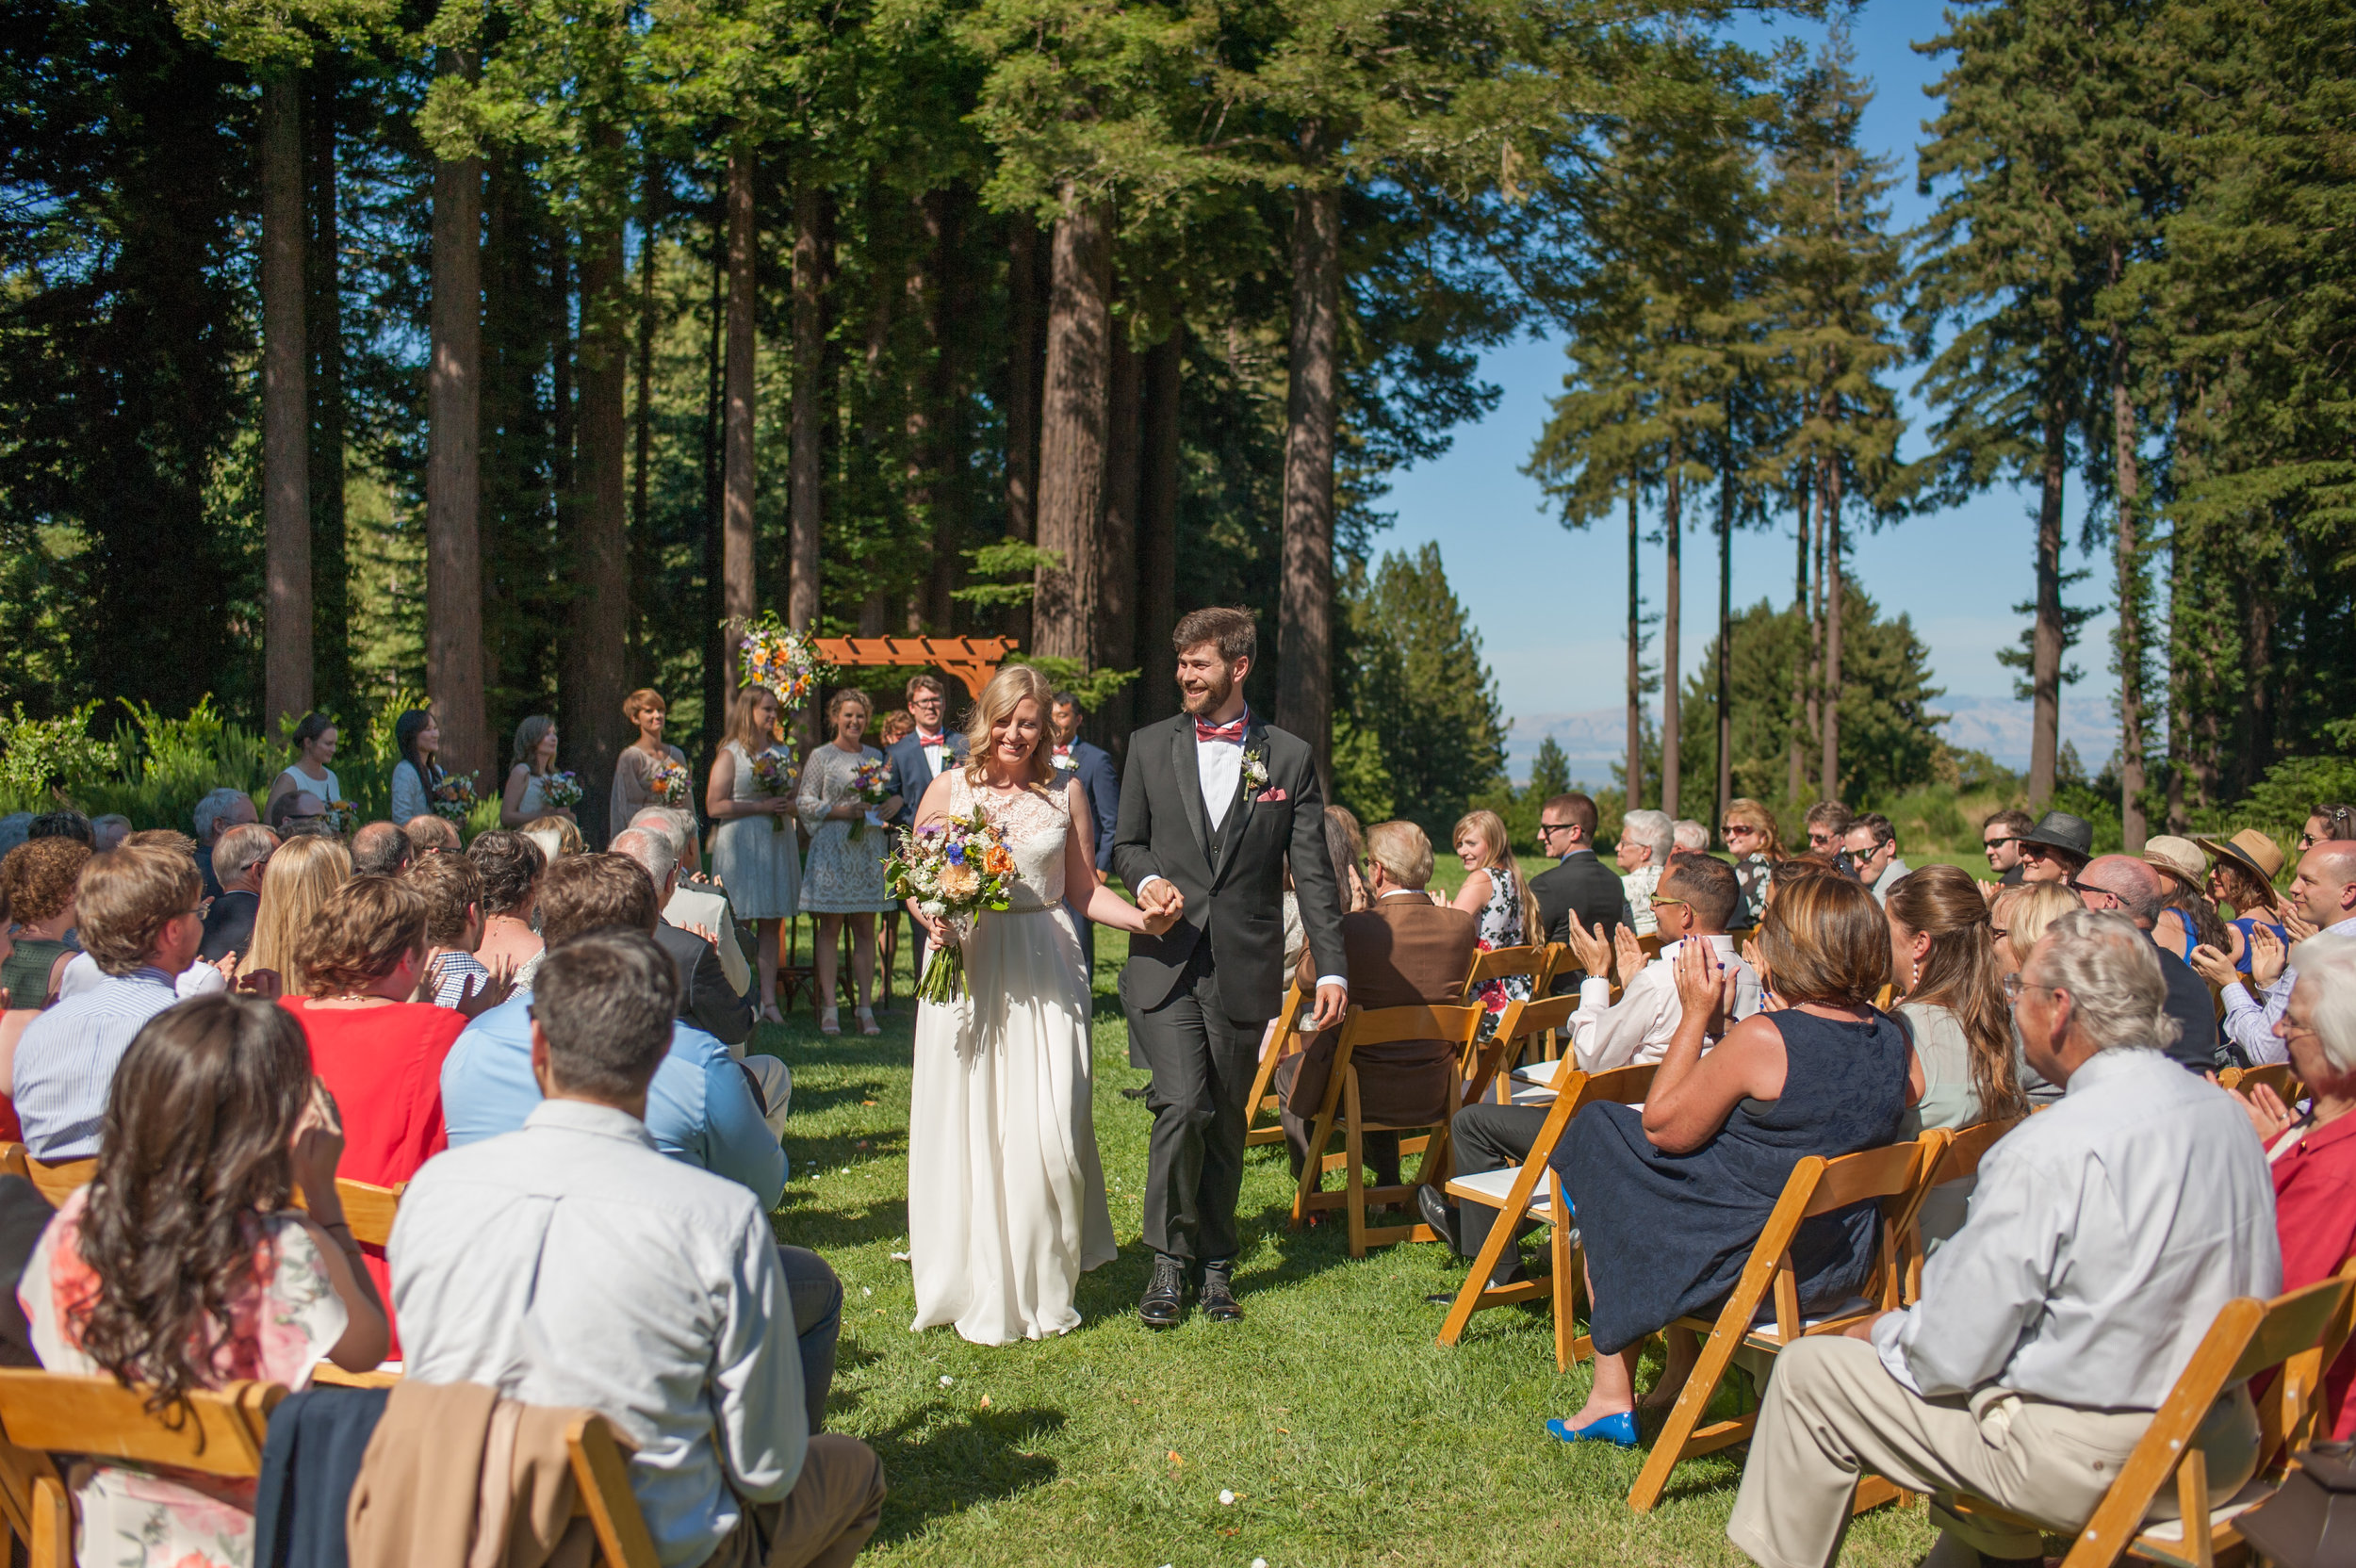 suz-bryan-024-mountain-terrace-woodside-wedding-photographer-katherine-nicole-photography.JPG